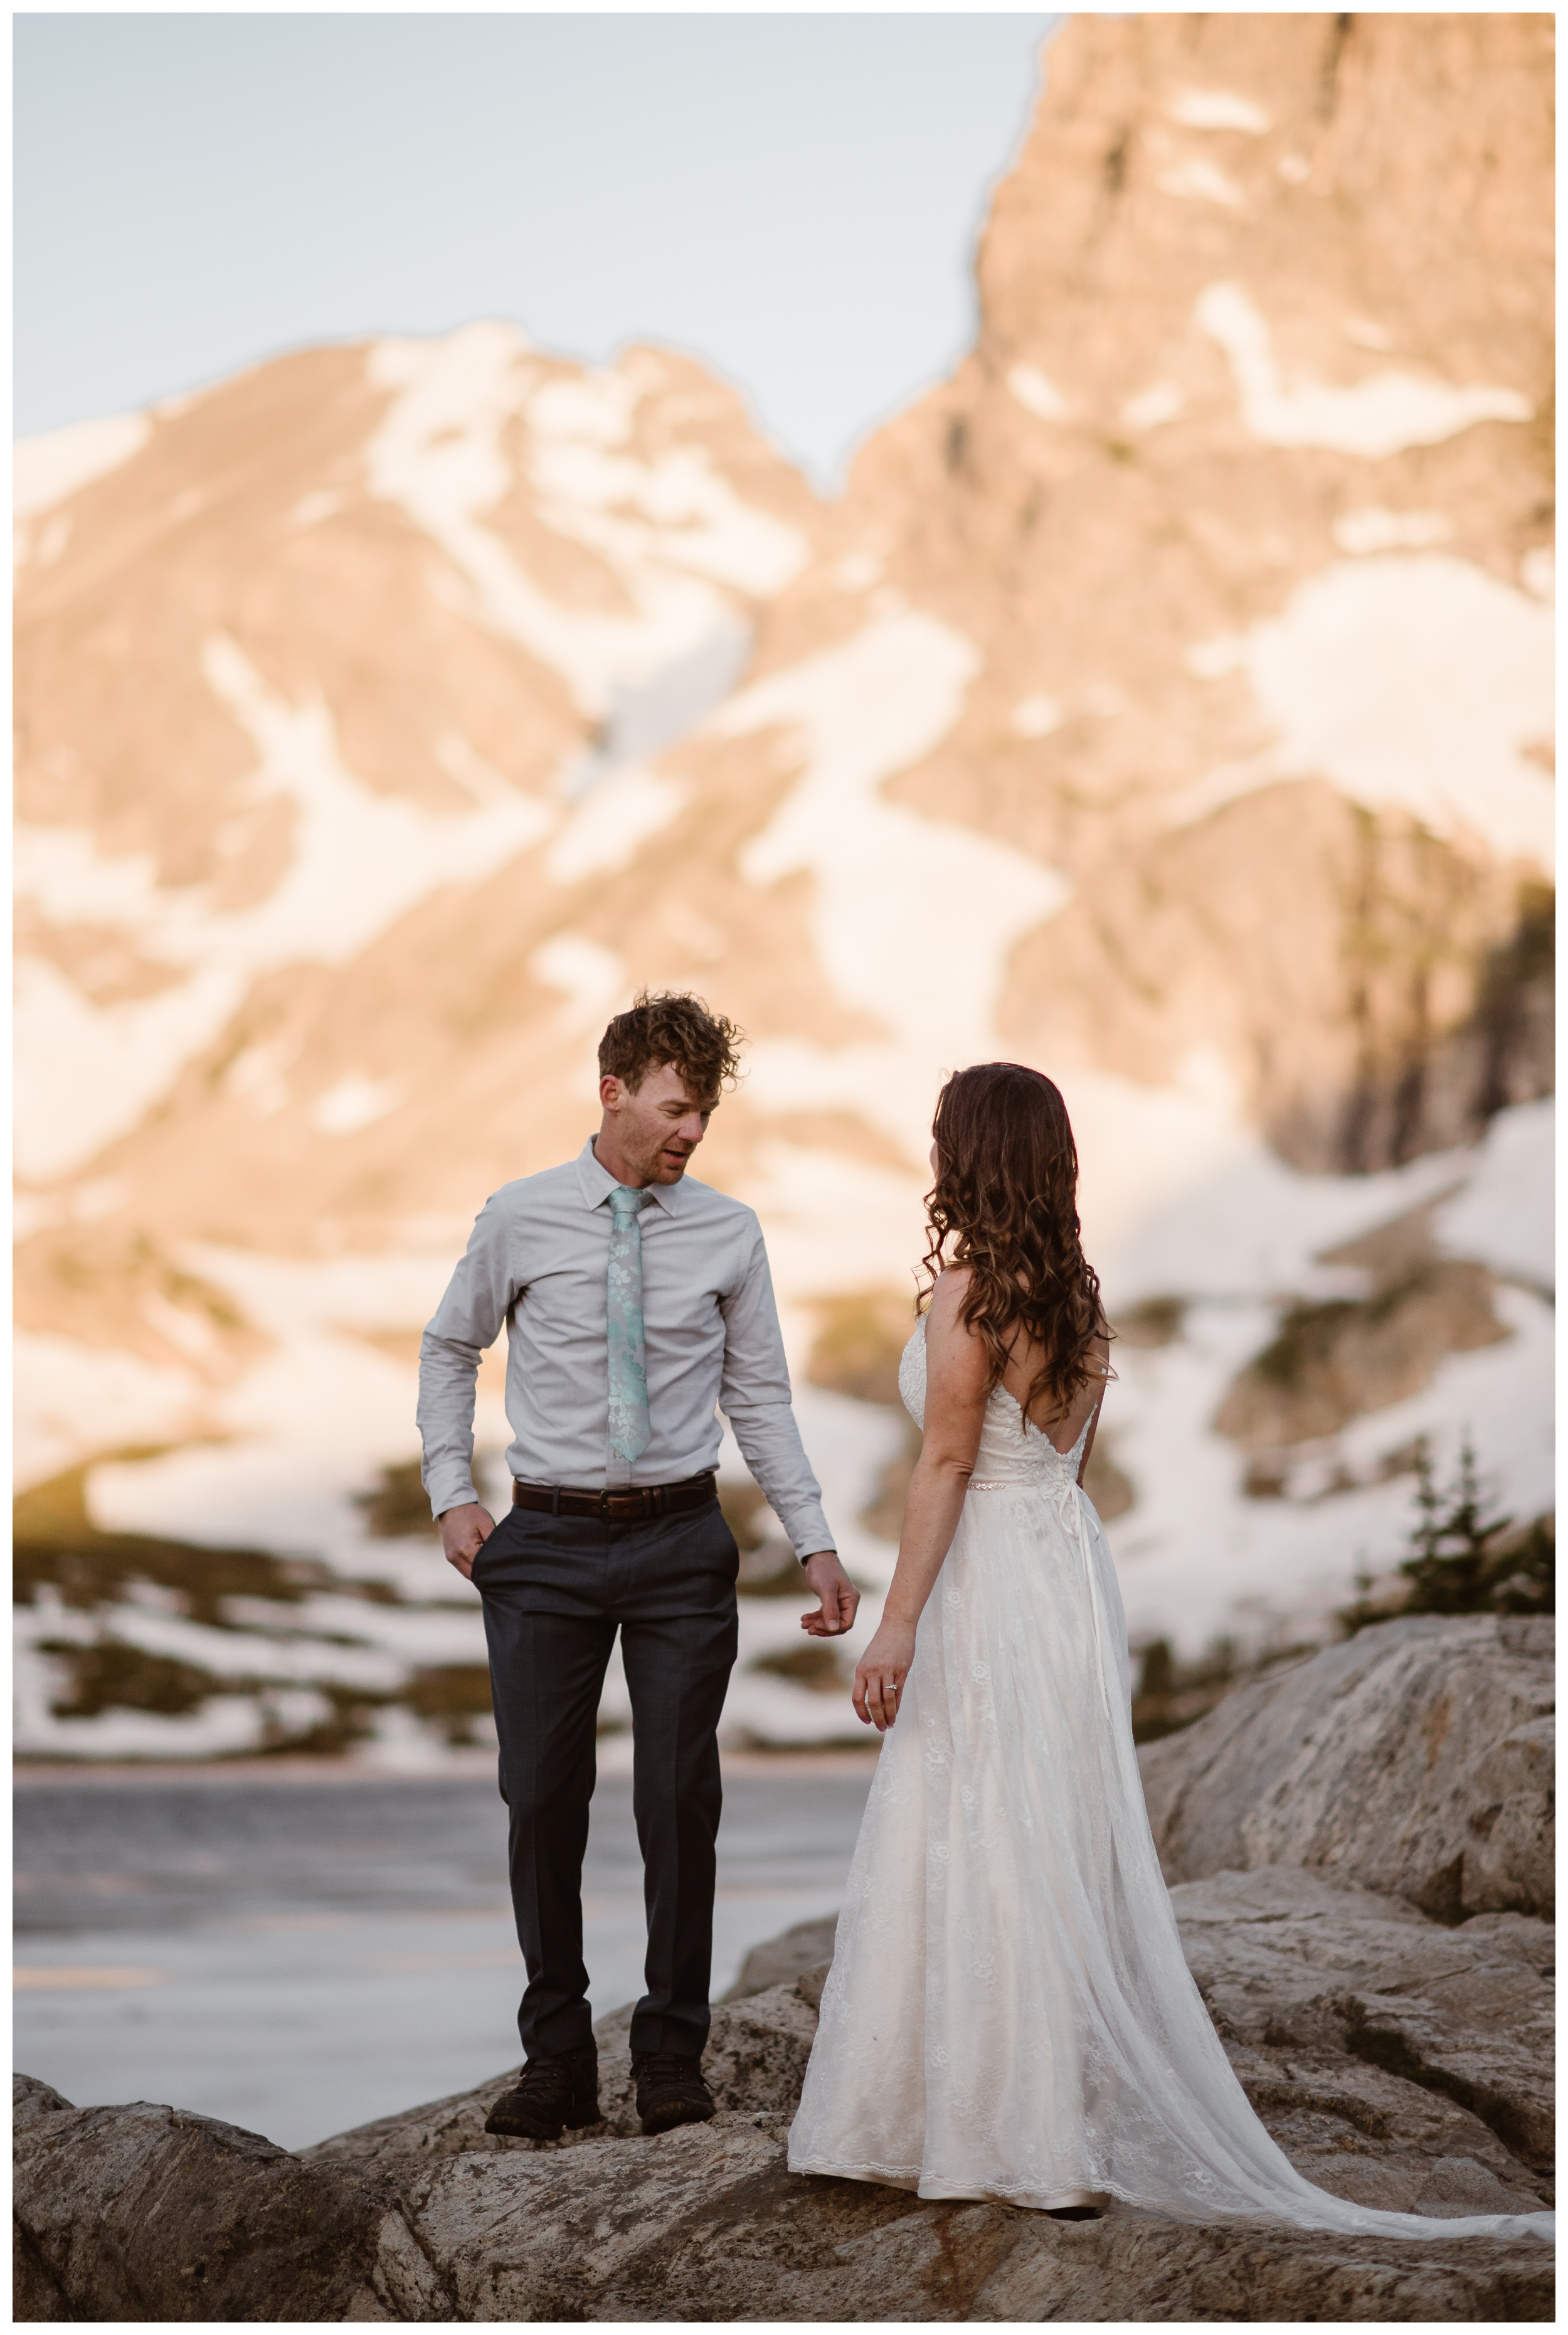 Matt and Karen's first look for their adventure hiking elopement outside Nederland, Colorado was beautiful with mountains glowing pink with alpenglow behind them. Photo by Adventure Instead, Maddie Mae.